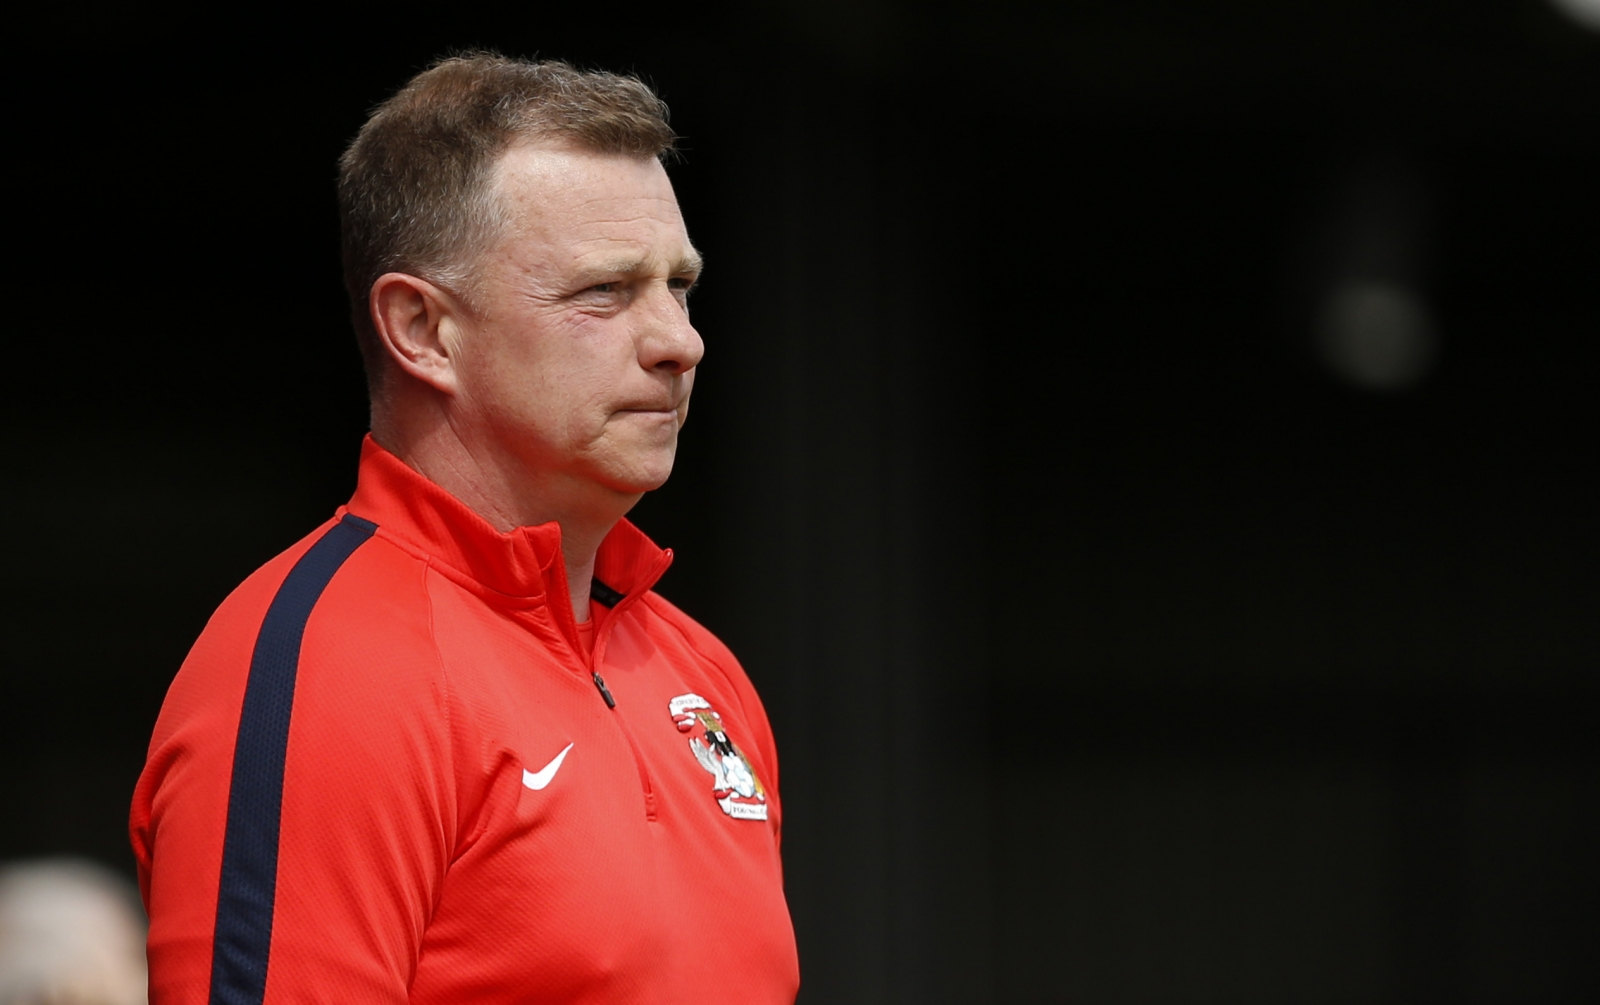 Swansea boss says no room for complacency against relegated Sunderland